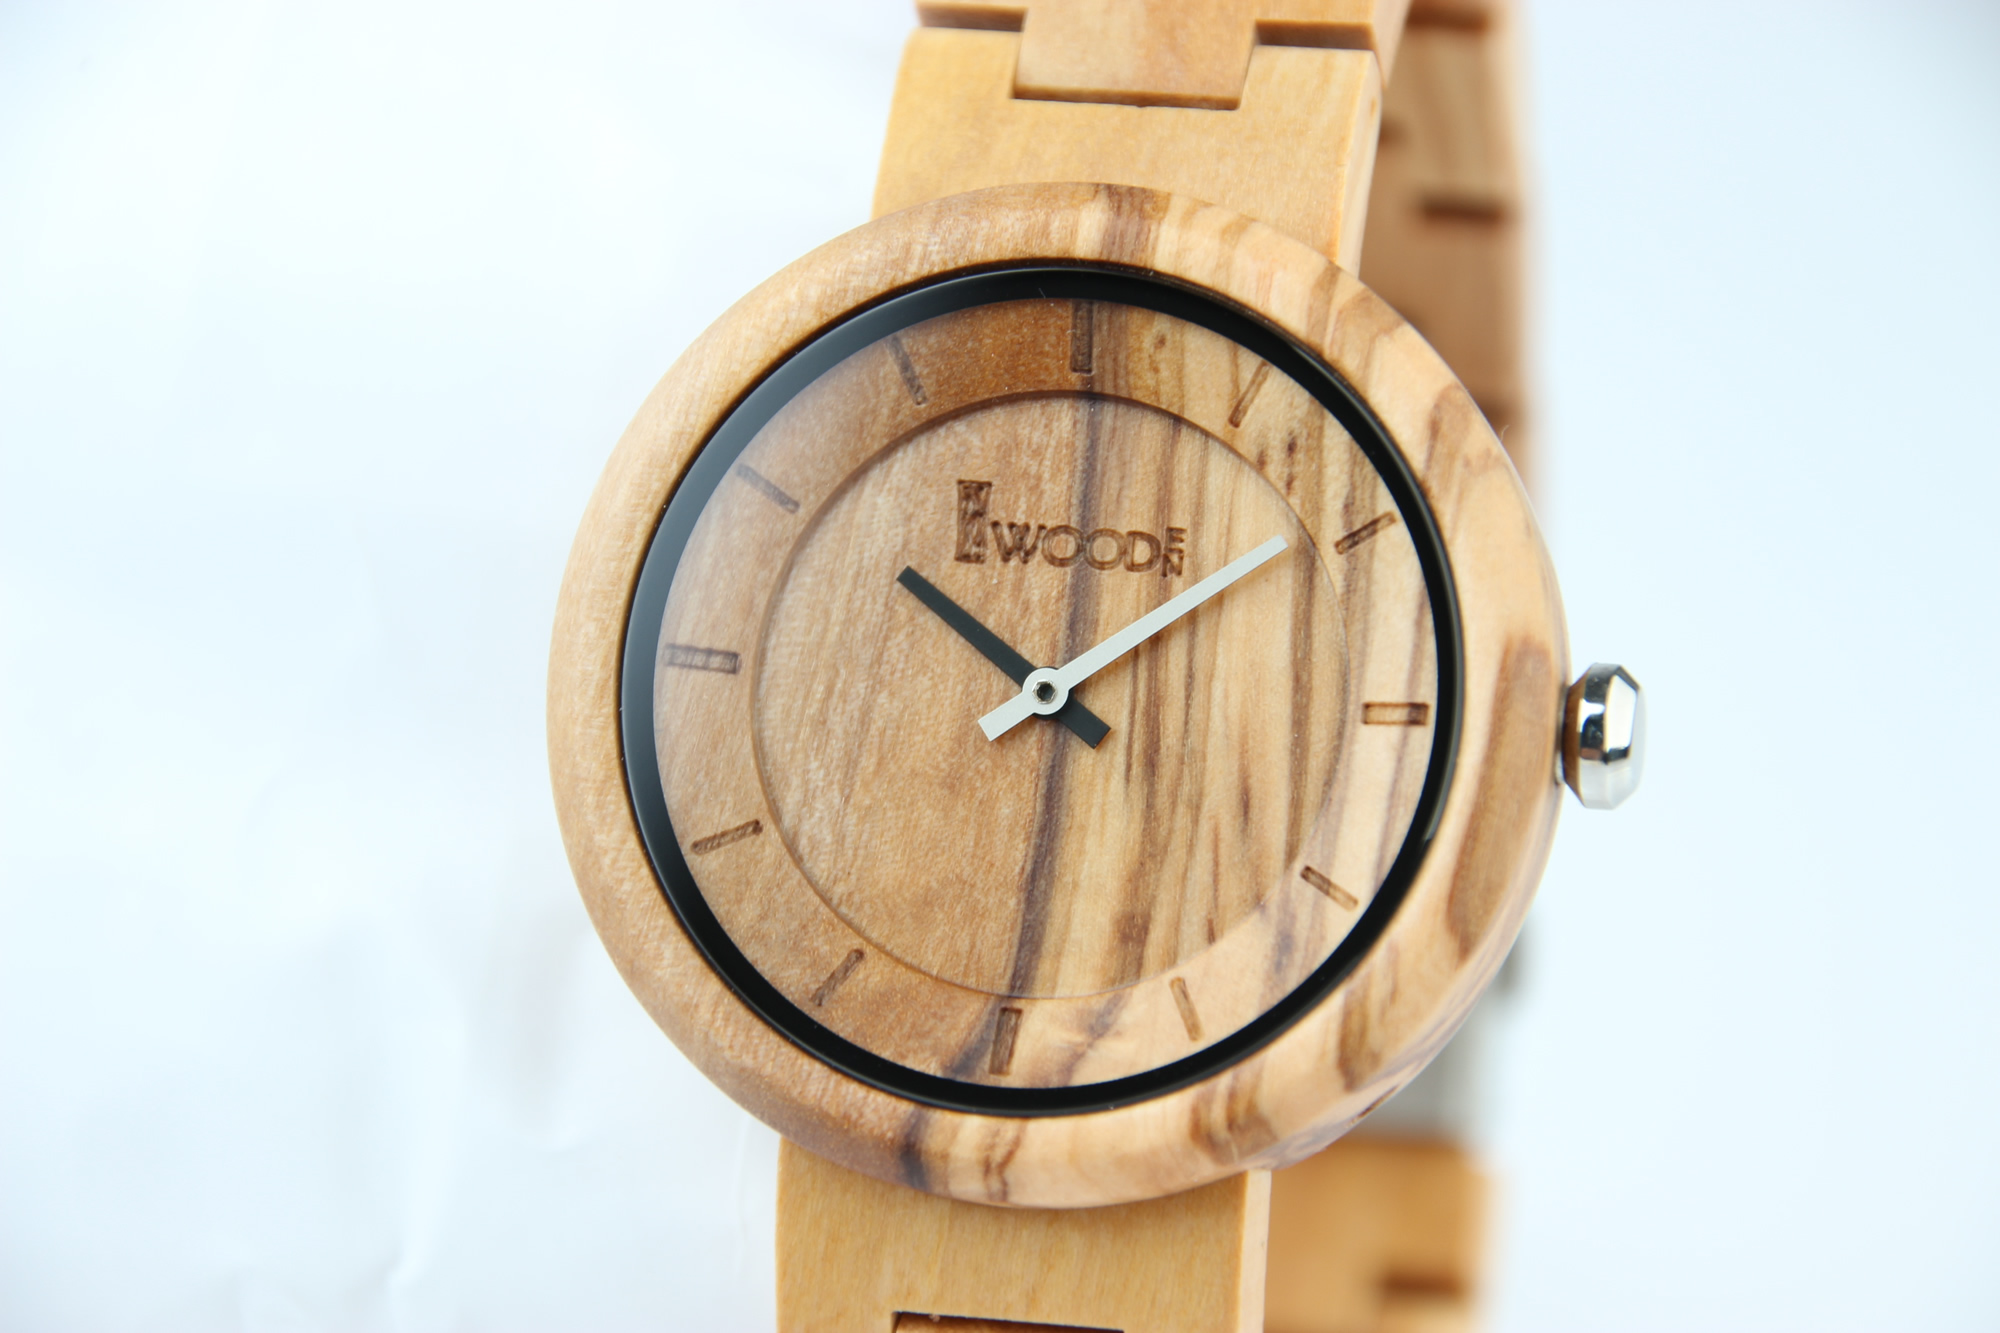 certificate watches button folding belt brand table movement wood watch category ce gnart sandalwood men genuine core quartz case material for shell store fashion wooden bamboo product s